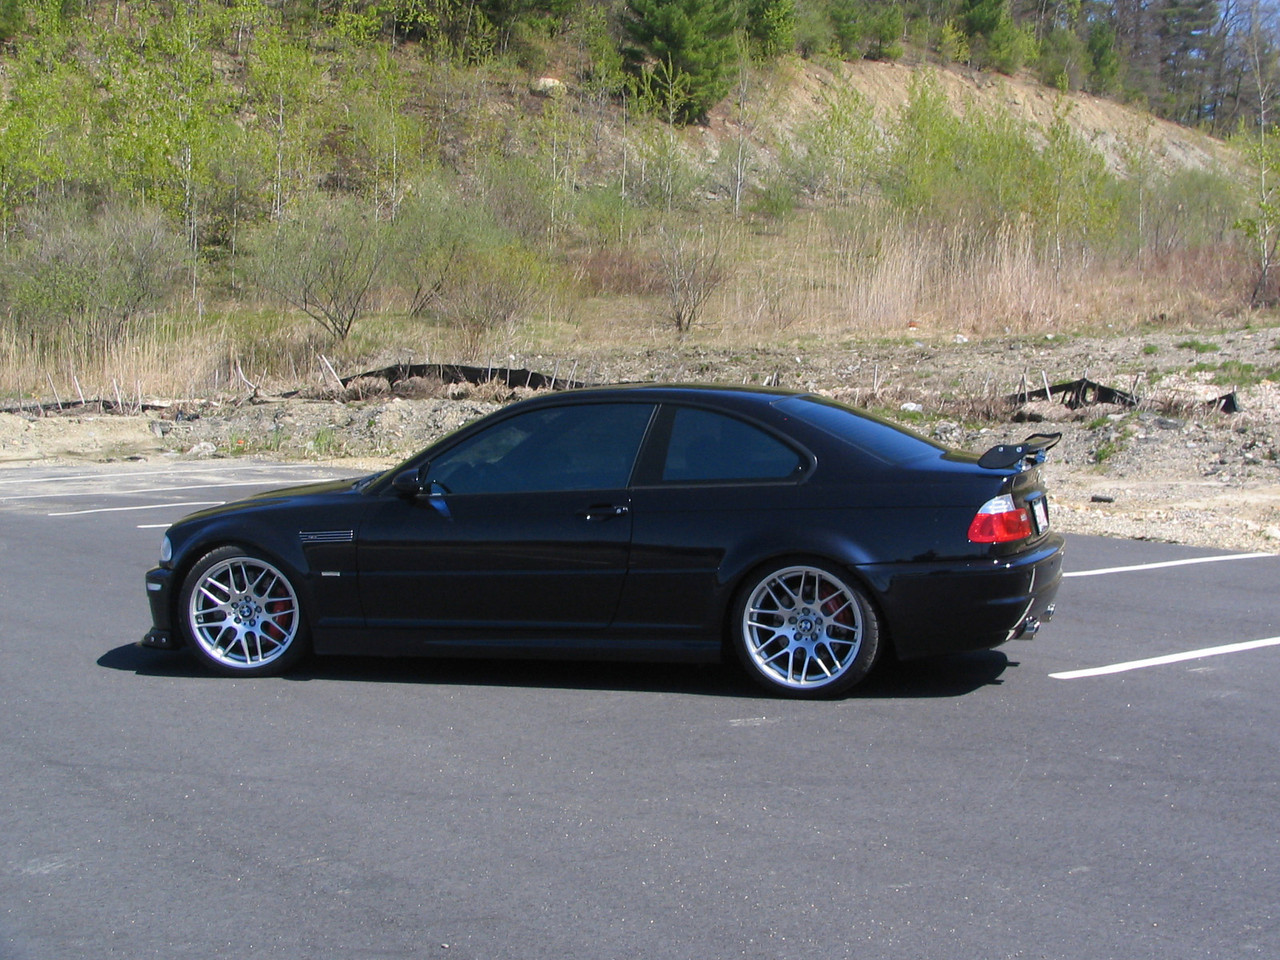 E46 M3. This car has it all.